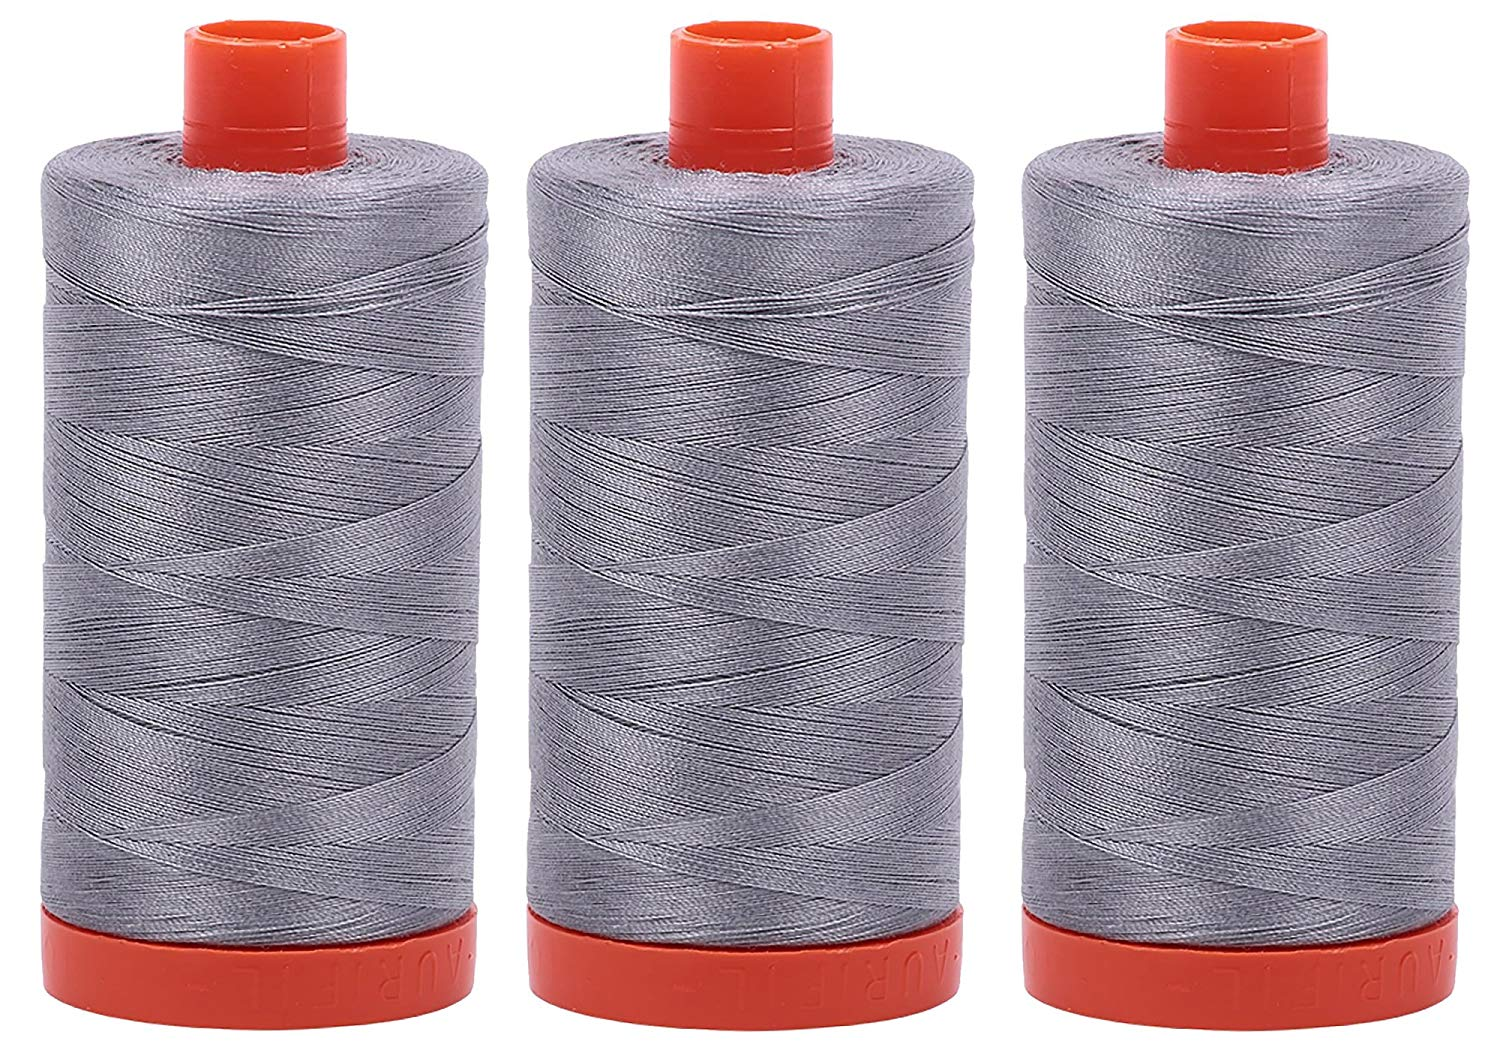 Aurifil Mako 50 wt Cotton Thread - Grey (2605) - Bundle of 3 Large Spools